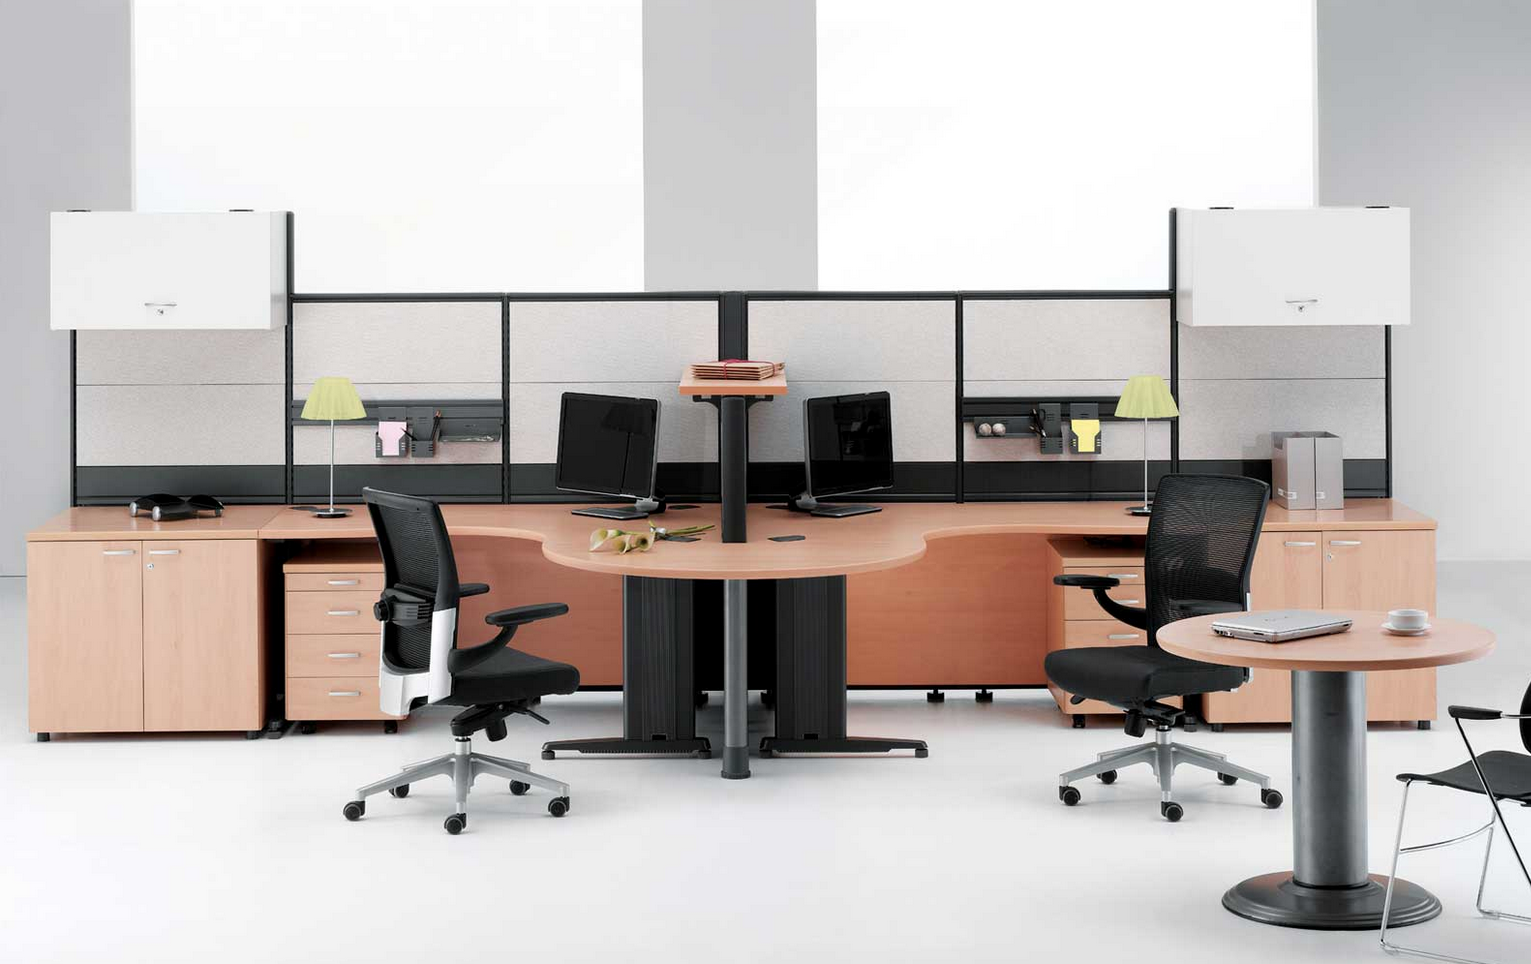 Shaver Business Products: Ottawa Office Furniture and Office Supplies